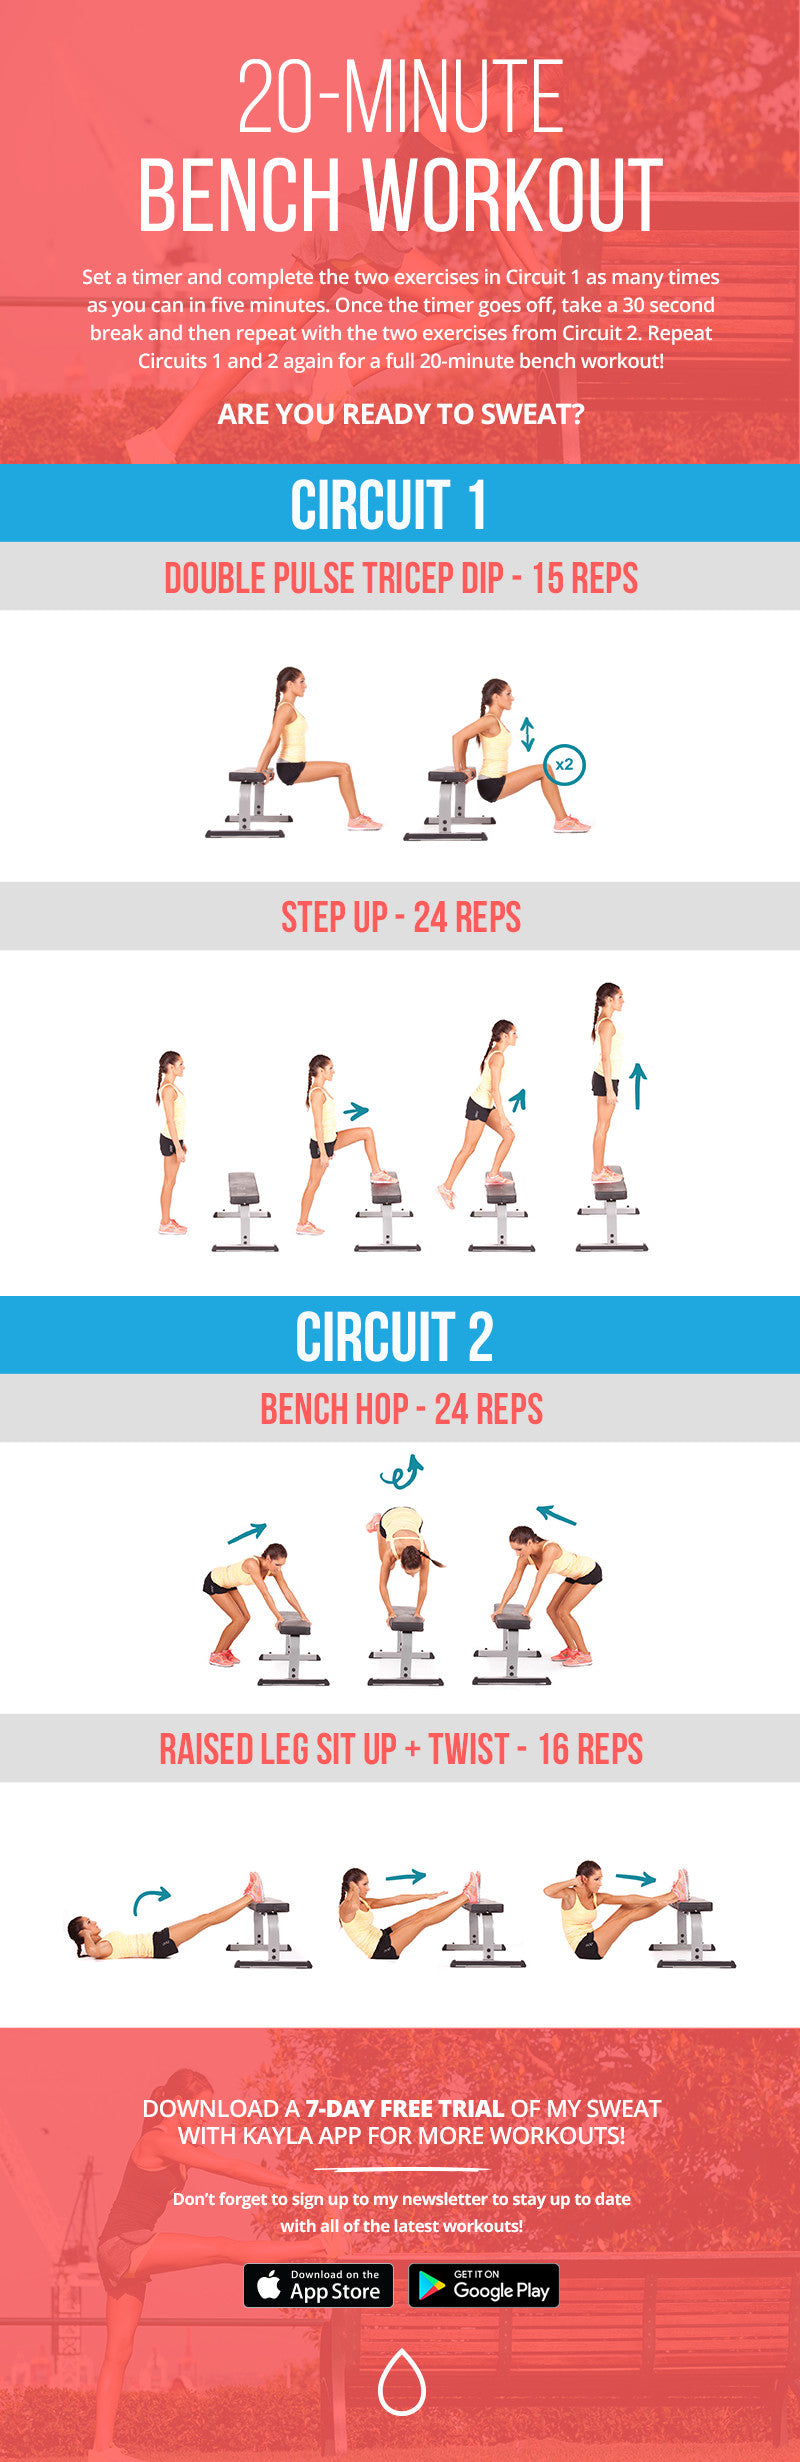 Free Bench Workout